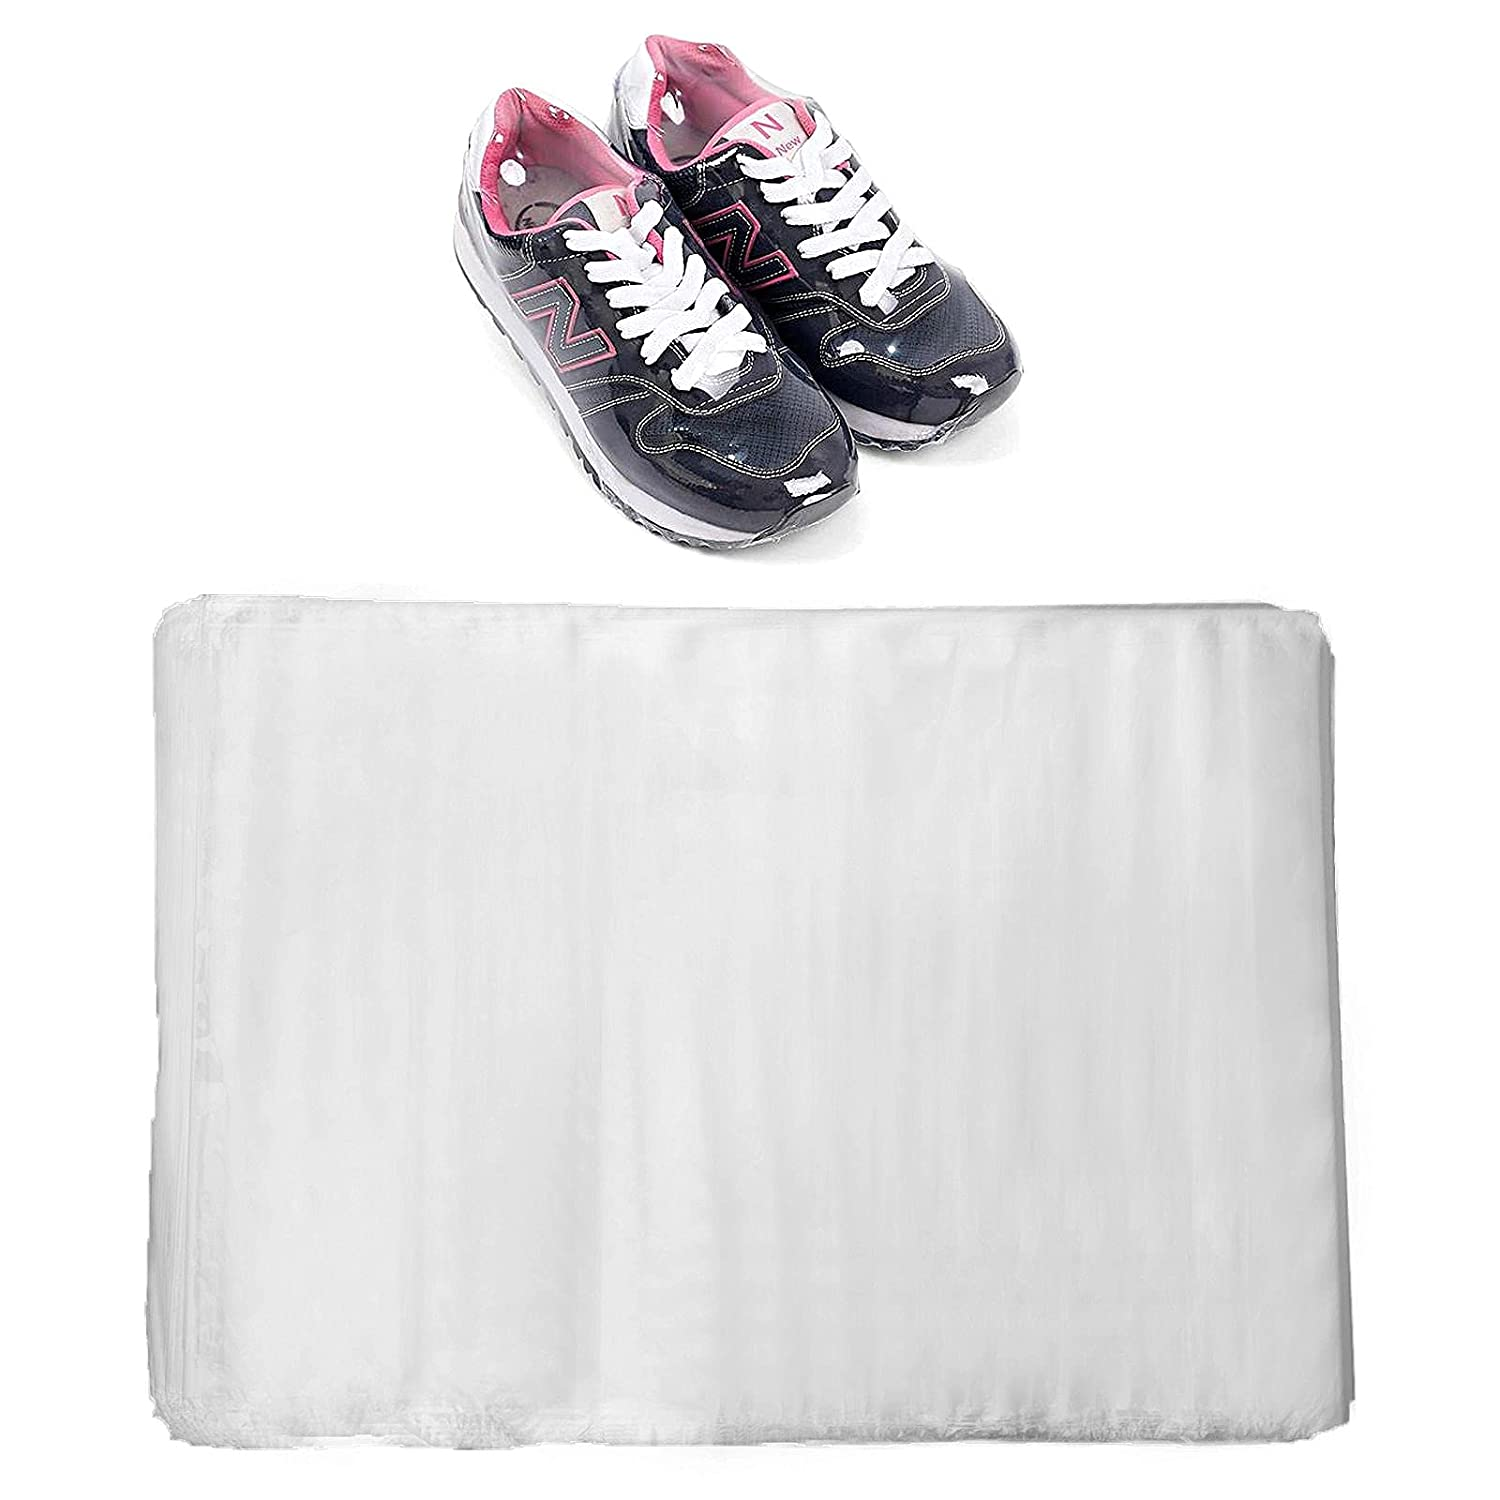 PETTYOLL 200PCS Shrink Wrap Bags Challenge the lowest price for Shoes 15 10 Max 79% OFF Hea x POF Inch